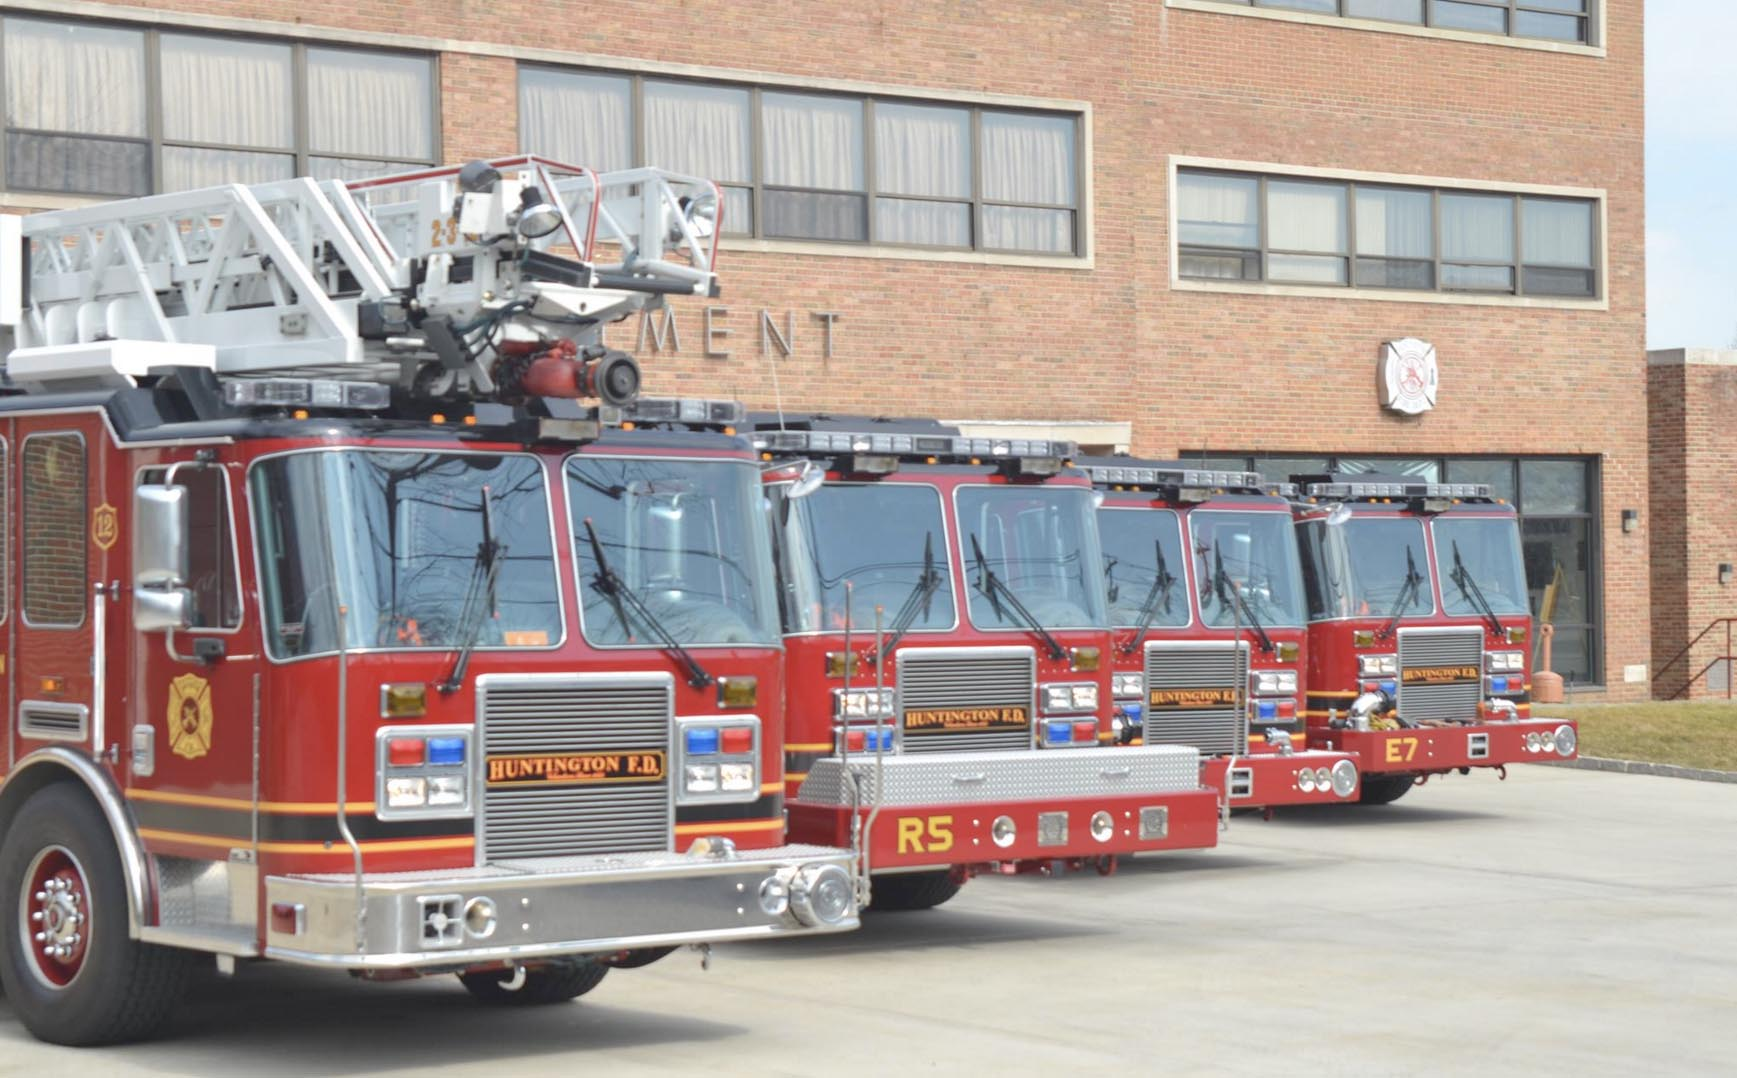 Six-term incumbent Thomas Brown is facing former chief and 31-year member of the Huntington Fire Department Jimmy C. Martin in a race for huntington fire district commissioner. credit: facebook